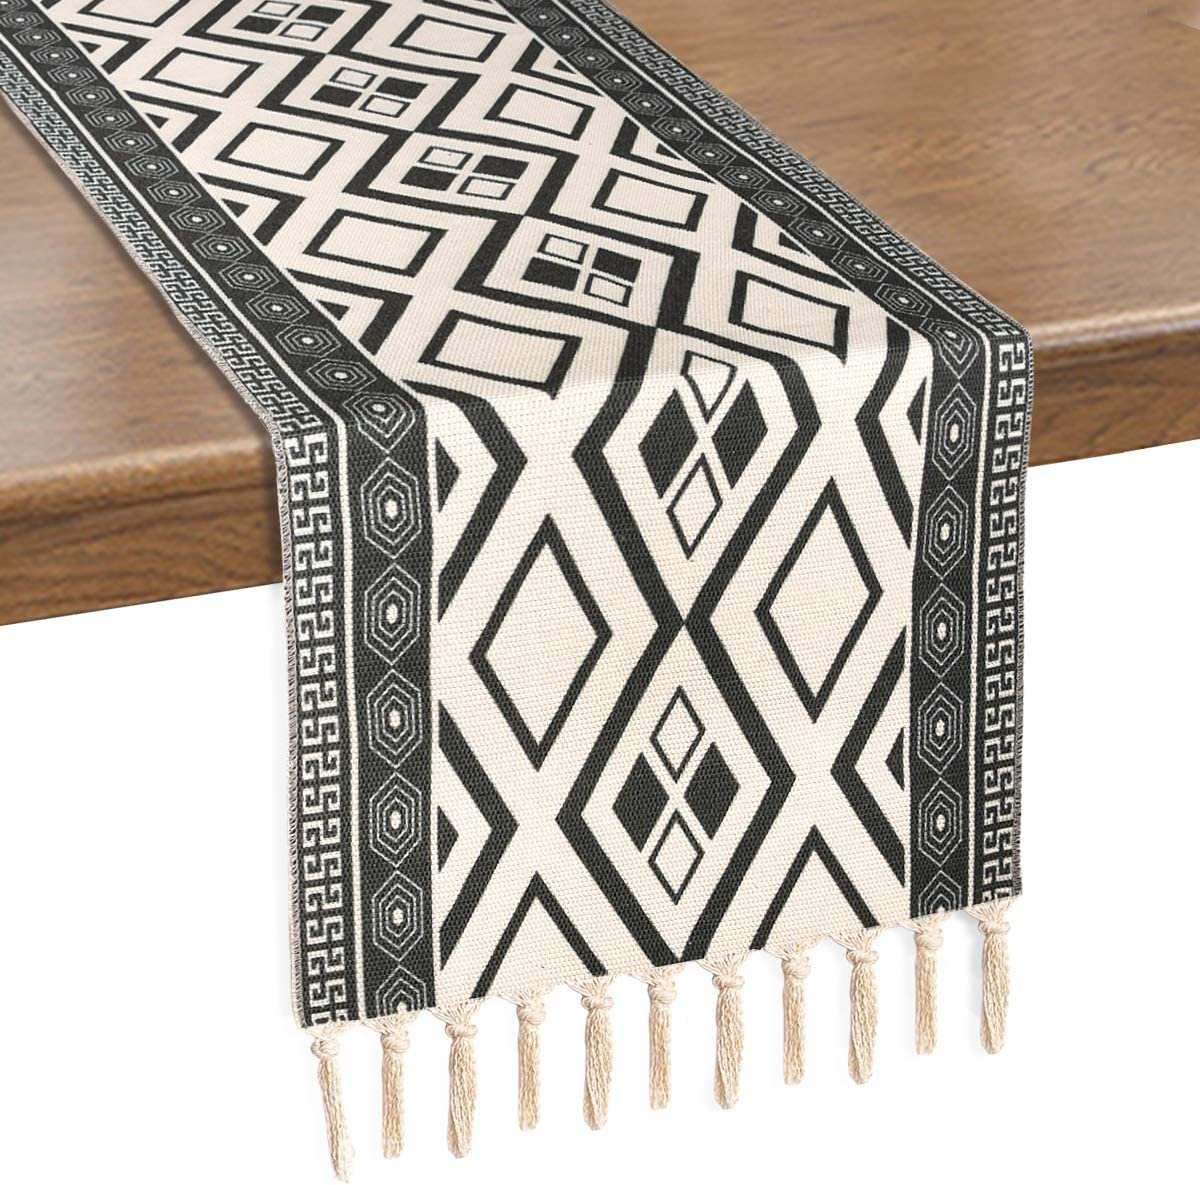 Alishomtll Boho Table Runners with Tassels Rustic Bohemian Woven Table Runner for Summer, Spring Holiday, Catering Events, Dinner Parties, Wedding, Indoor and Outdoor Parties, 14